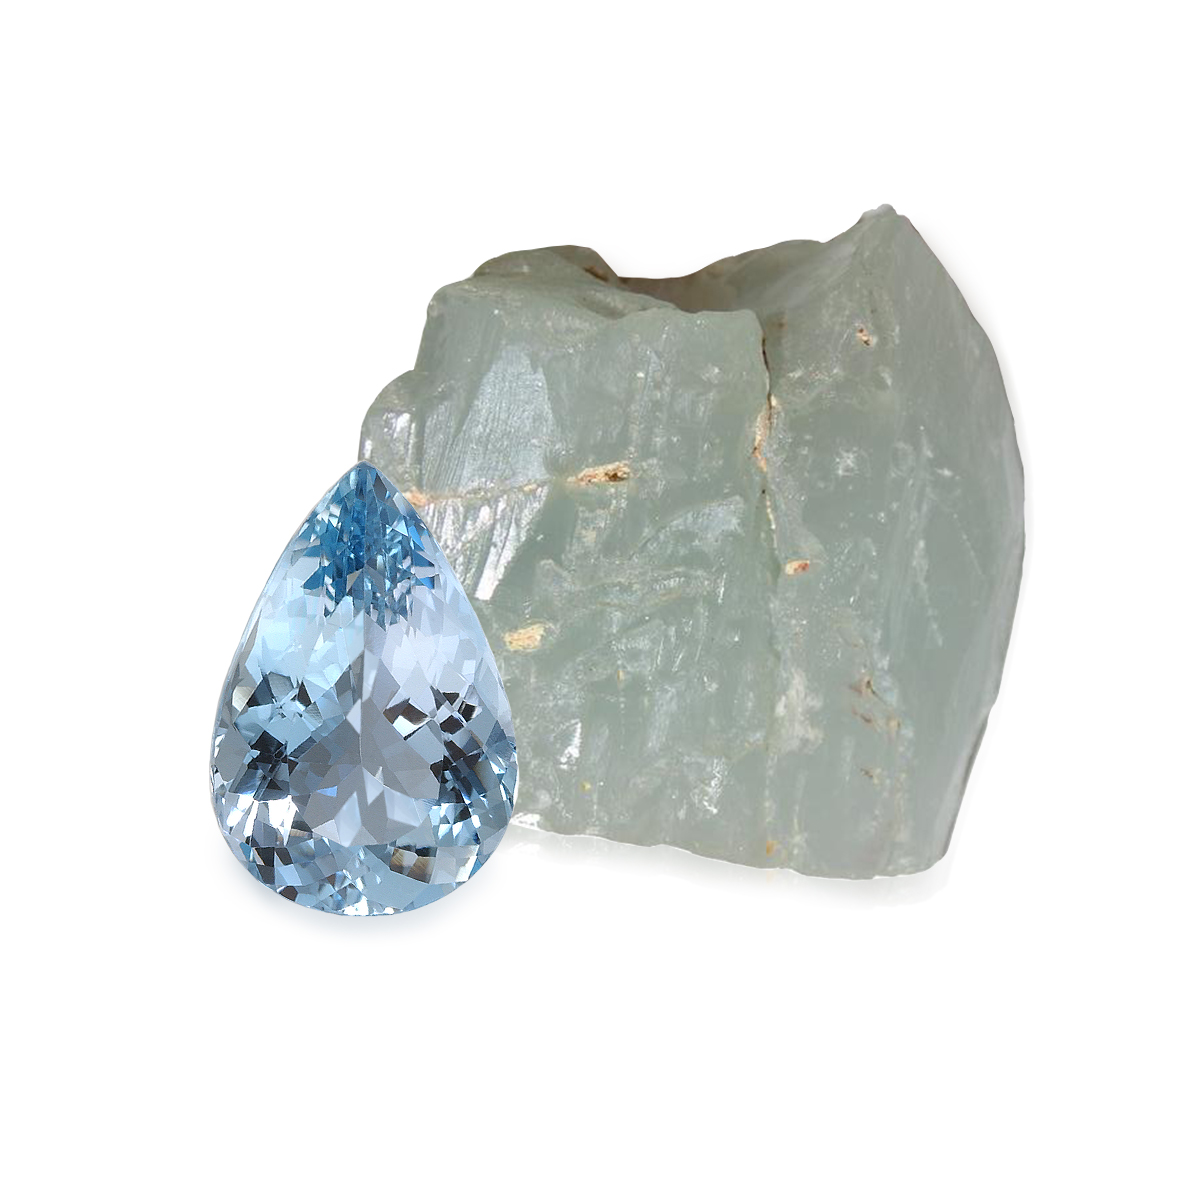 Celebrate March Birthdays with Two Great Birthstones: Aquamarine and Chalcedony